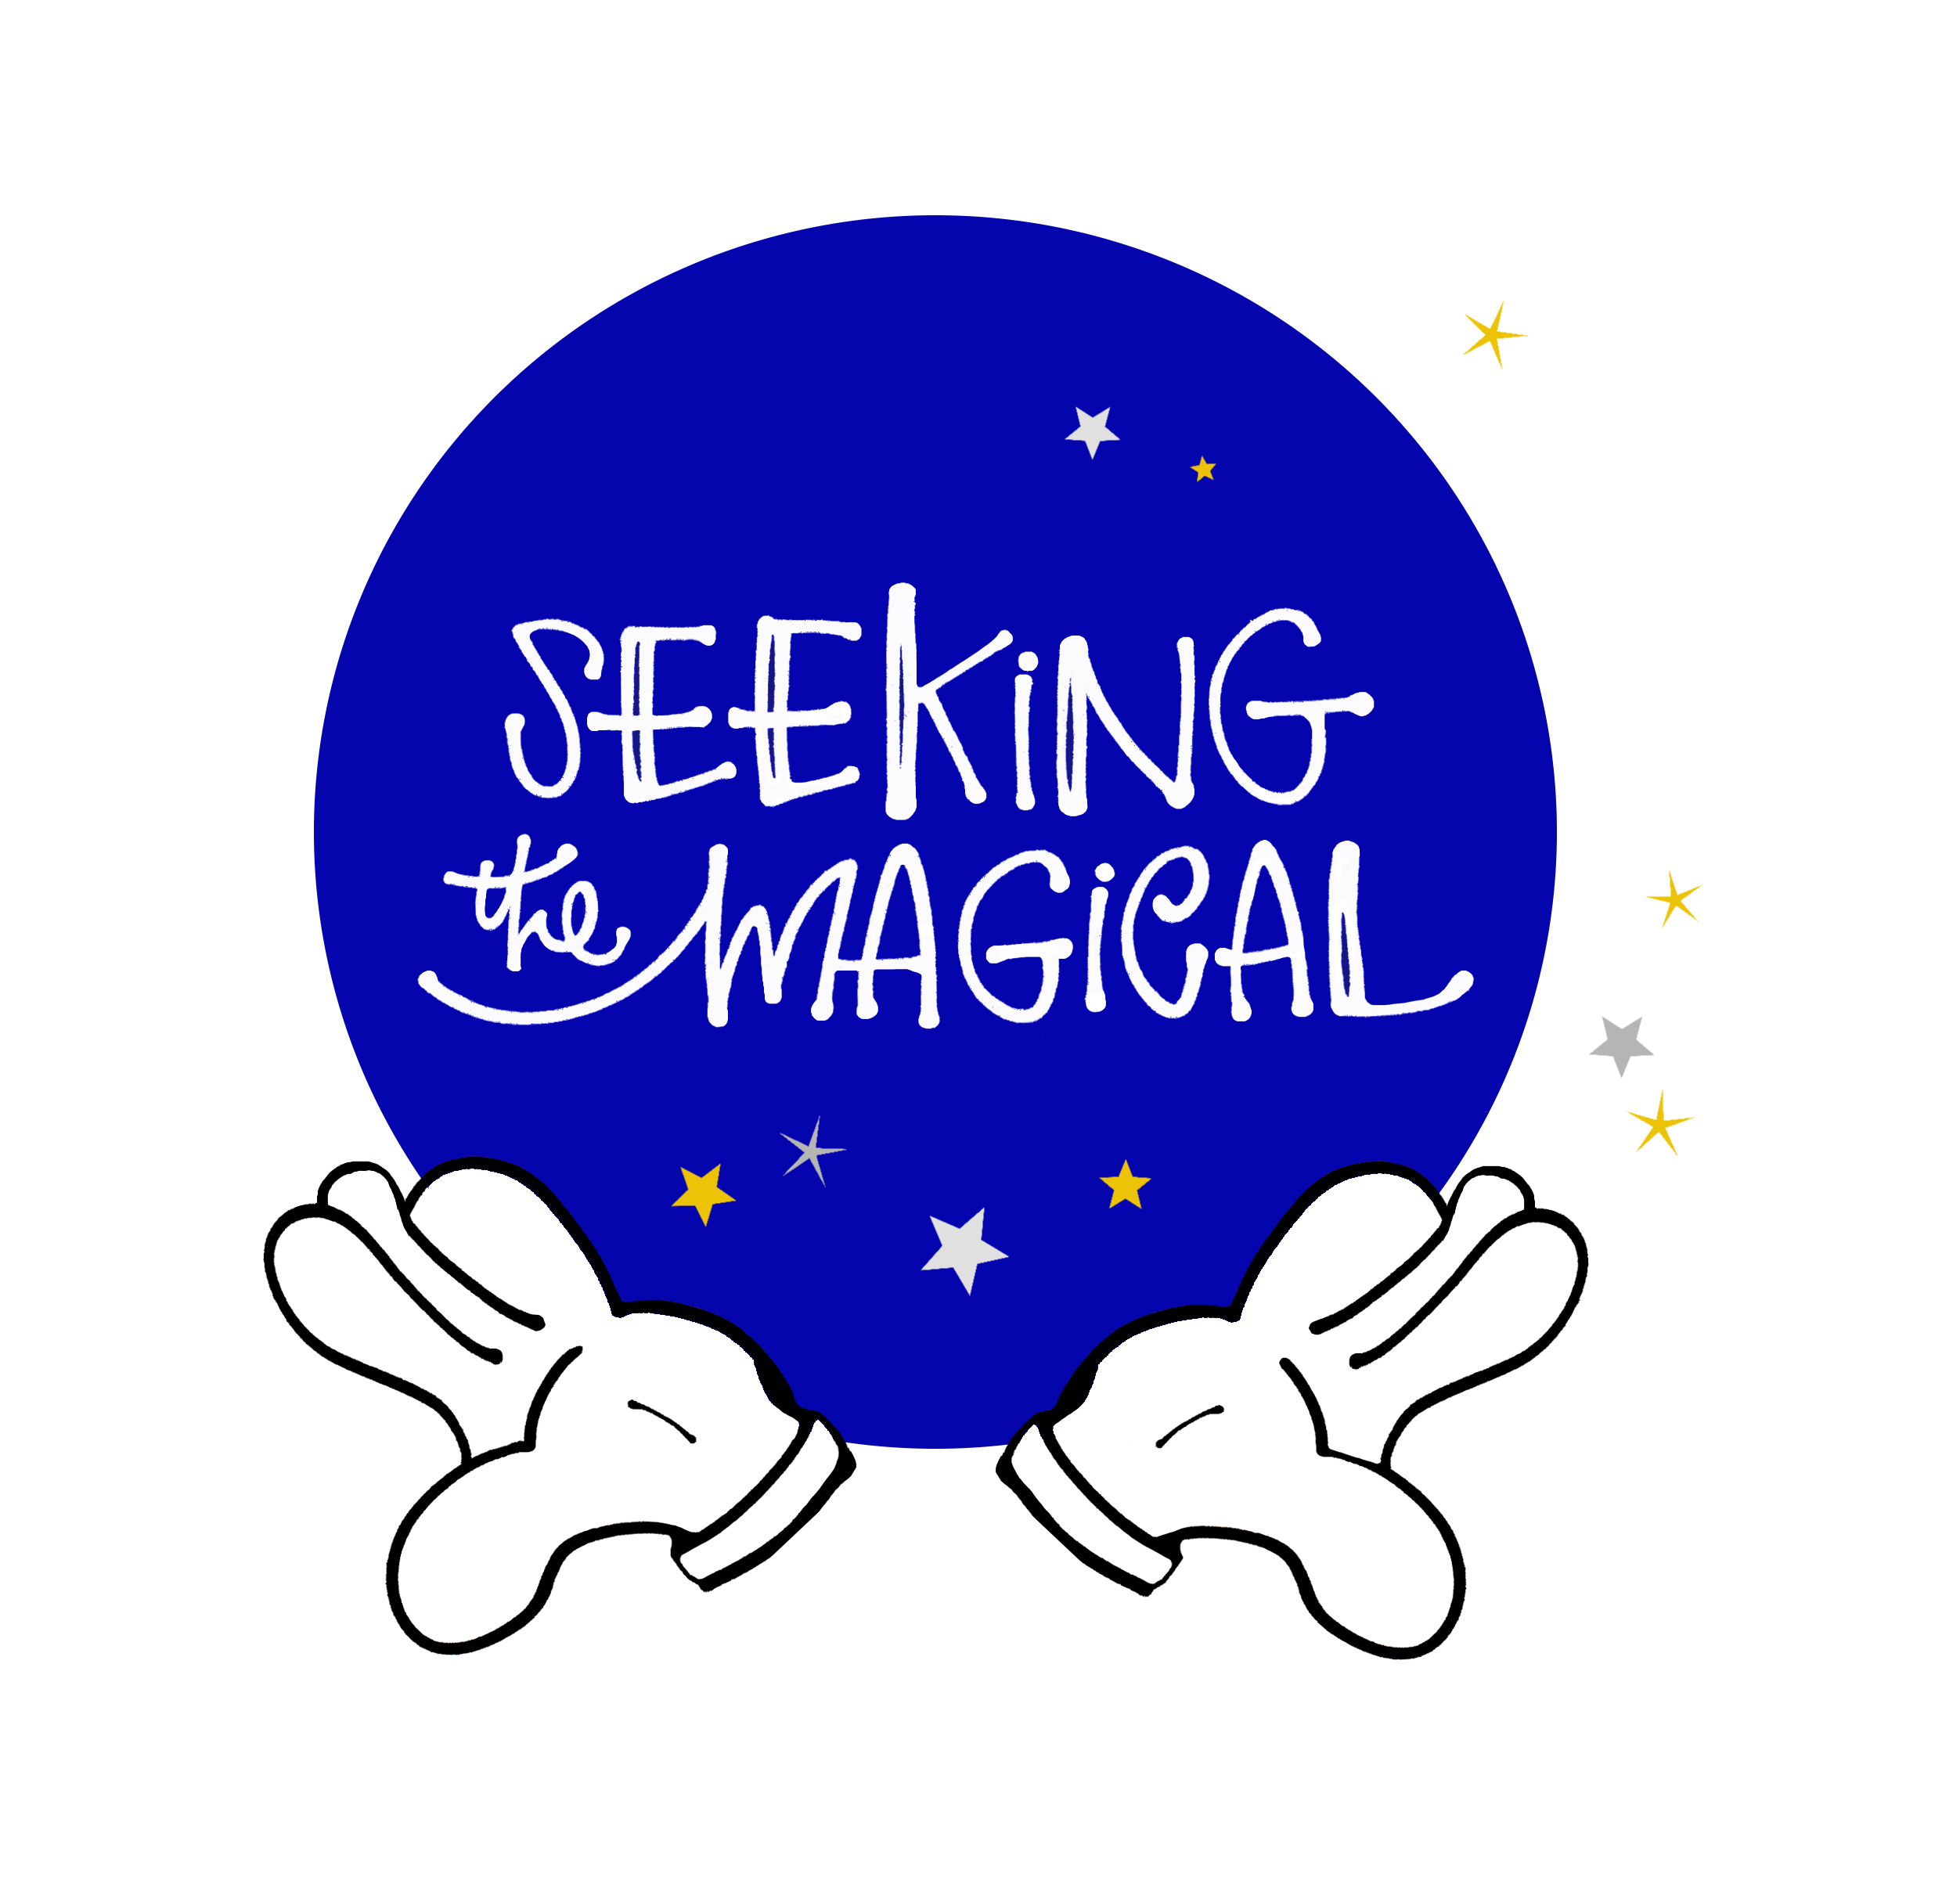 Seeking the Magical